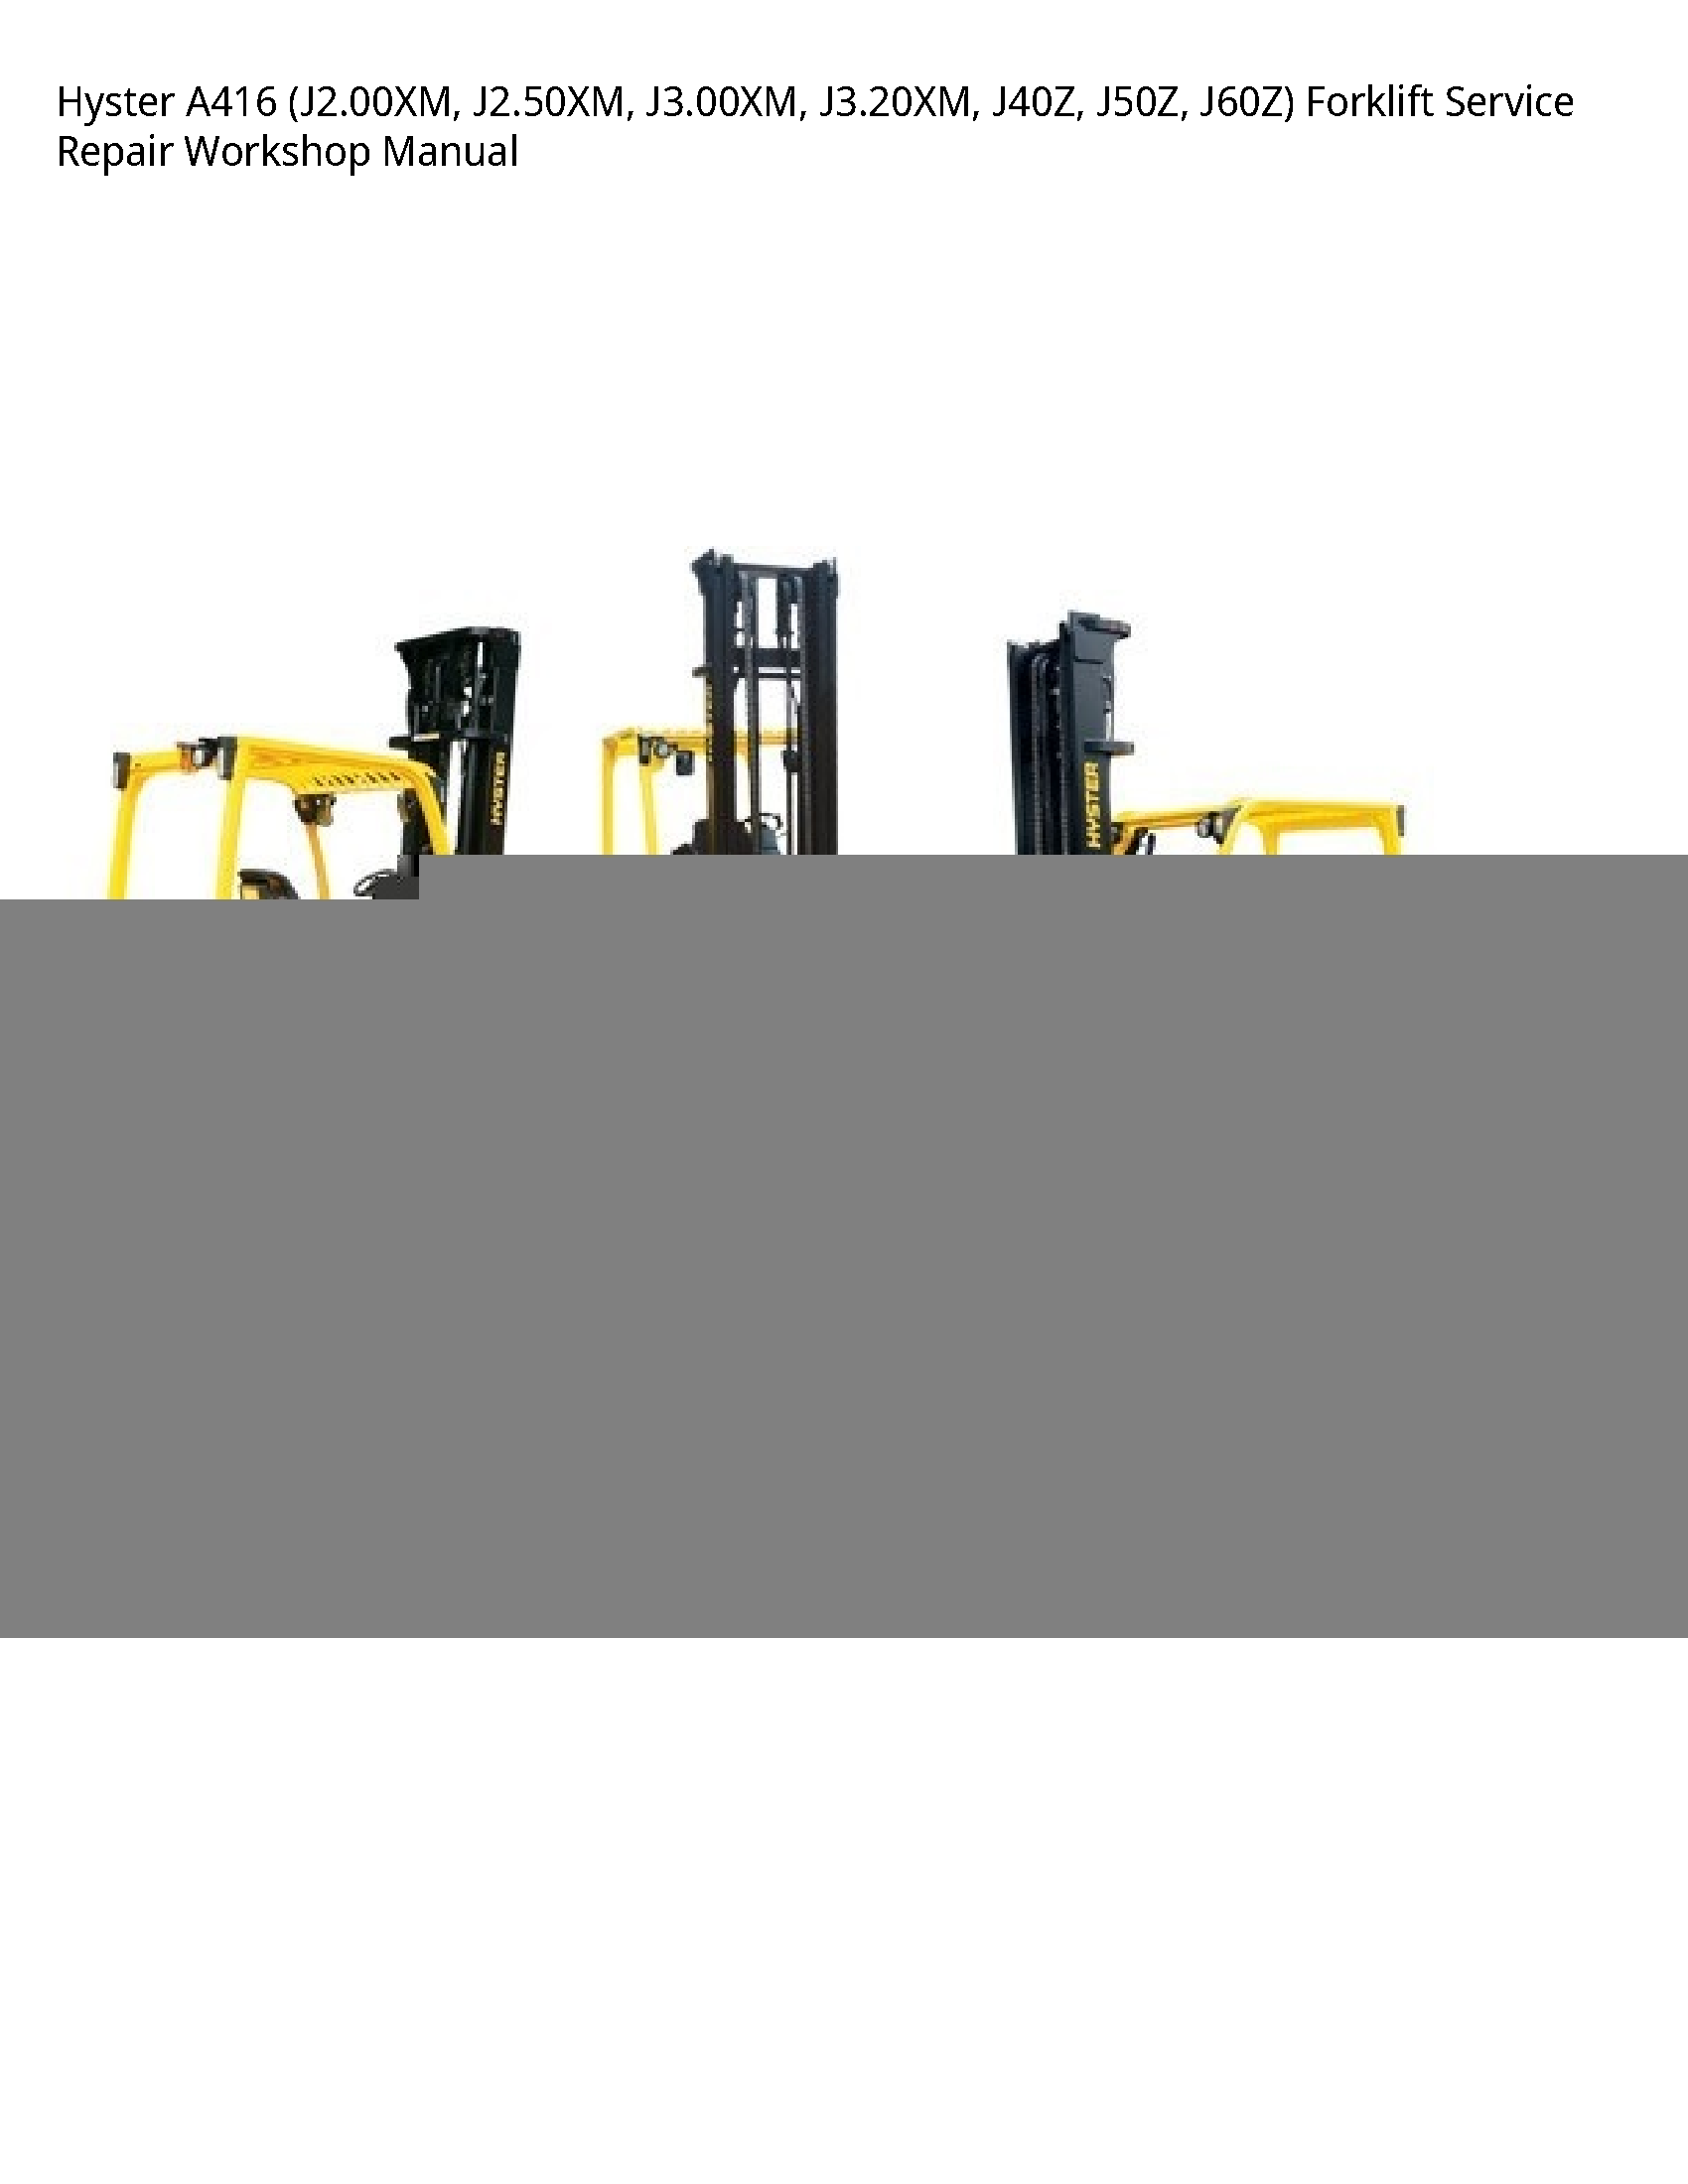 Hyster A416 Forklift manual